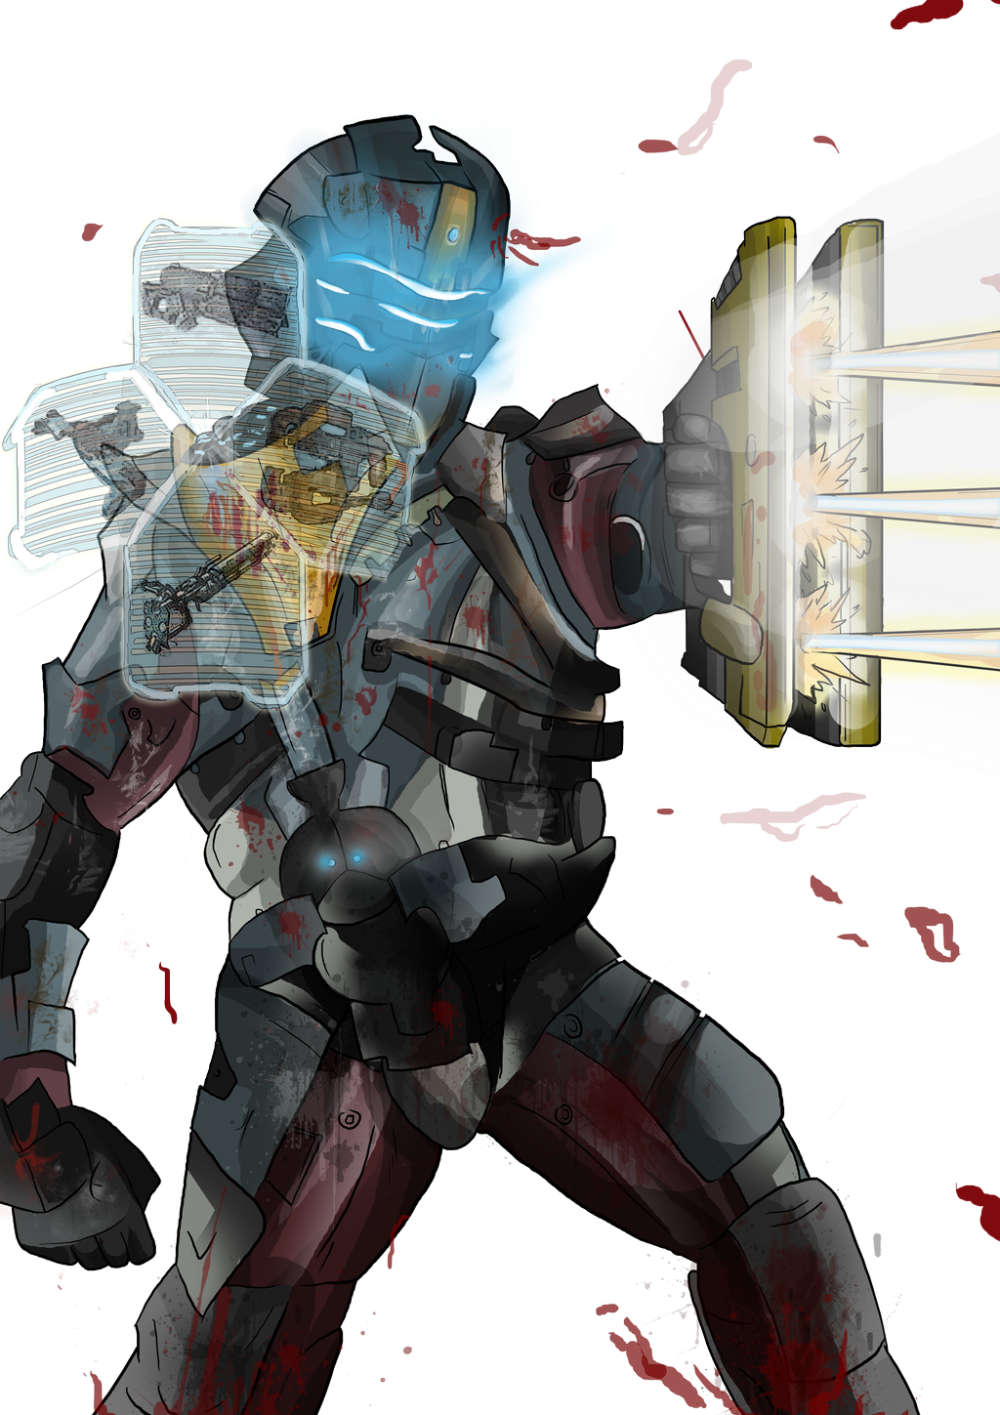 Dead Space 2 By Matthewhogben On Deviantart Dead Space Dead Futuristic Armour